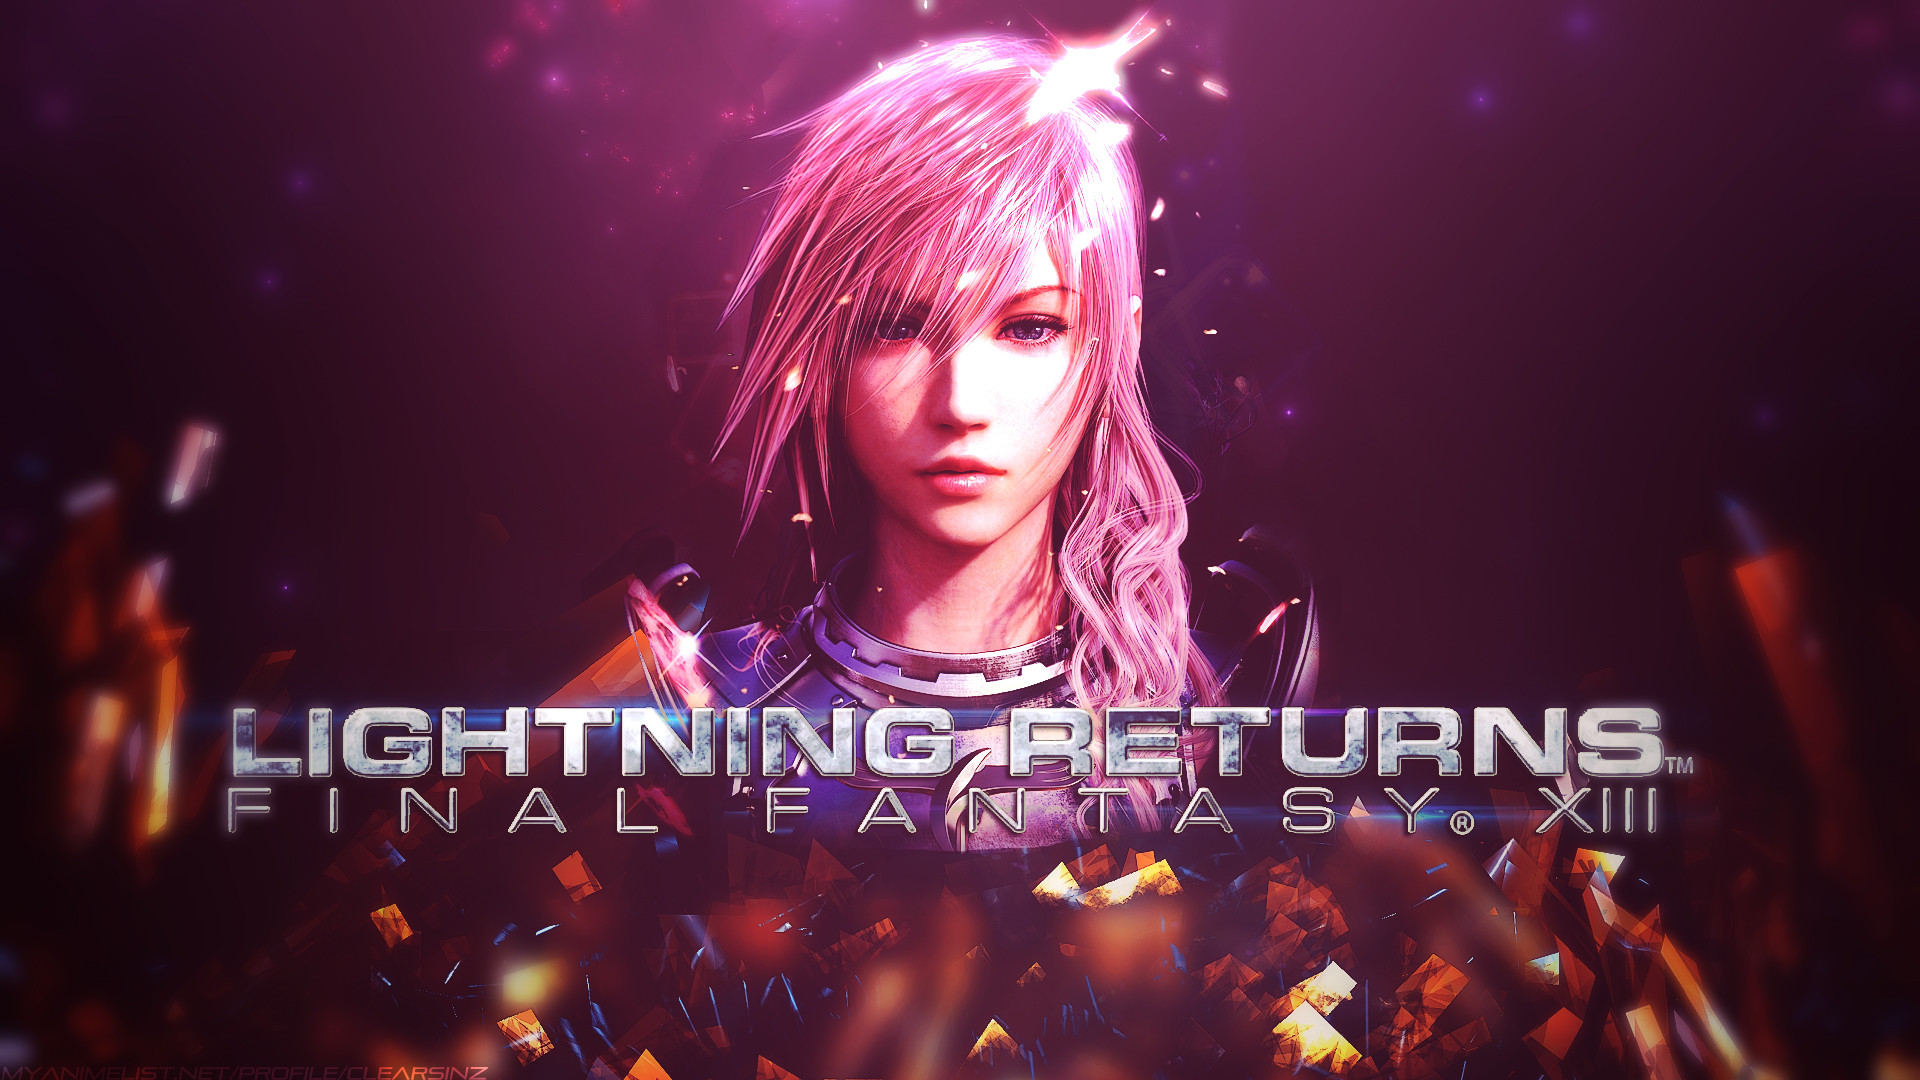 Final fantasy 13 lightning returns wallpaper 1920x1080 visit chile lightning returns wallpaper hd wallpapersafari final fantasy 13 lightning returns wallpaper 1920x1080 voltagebd Gallery